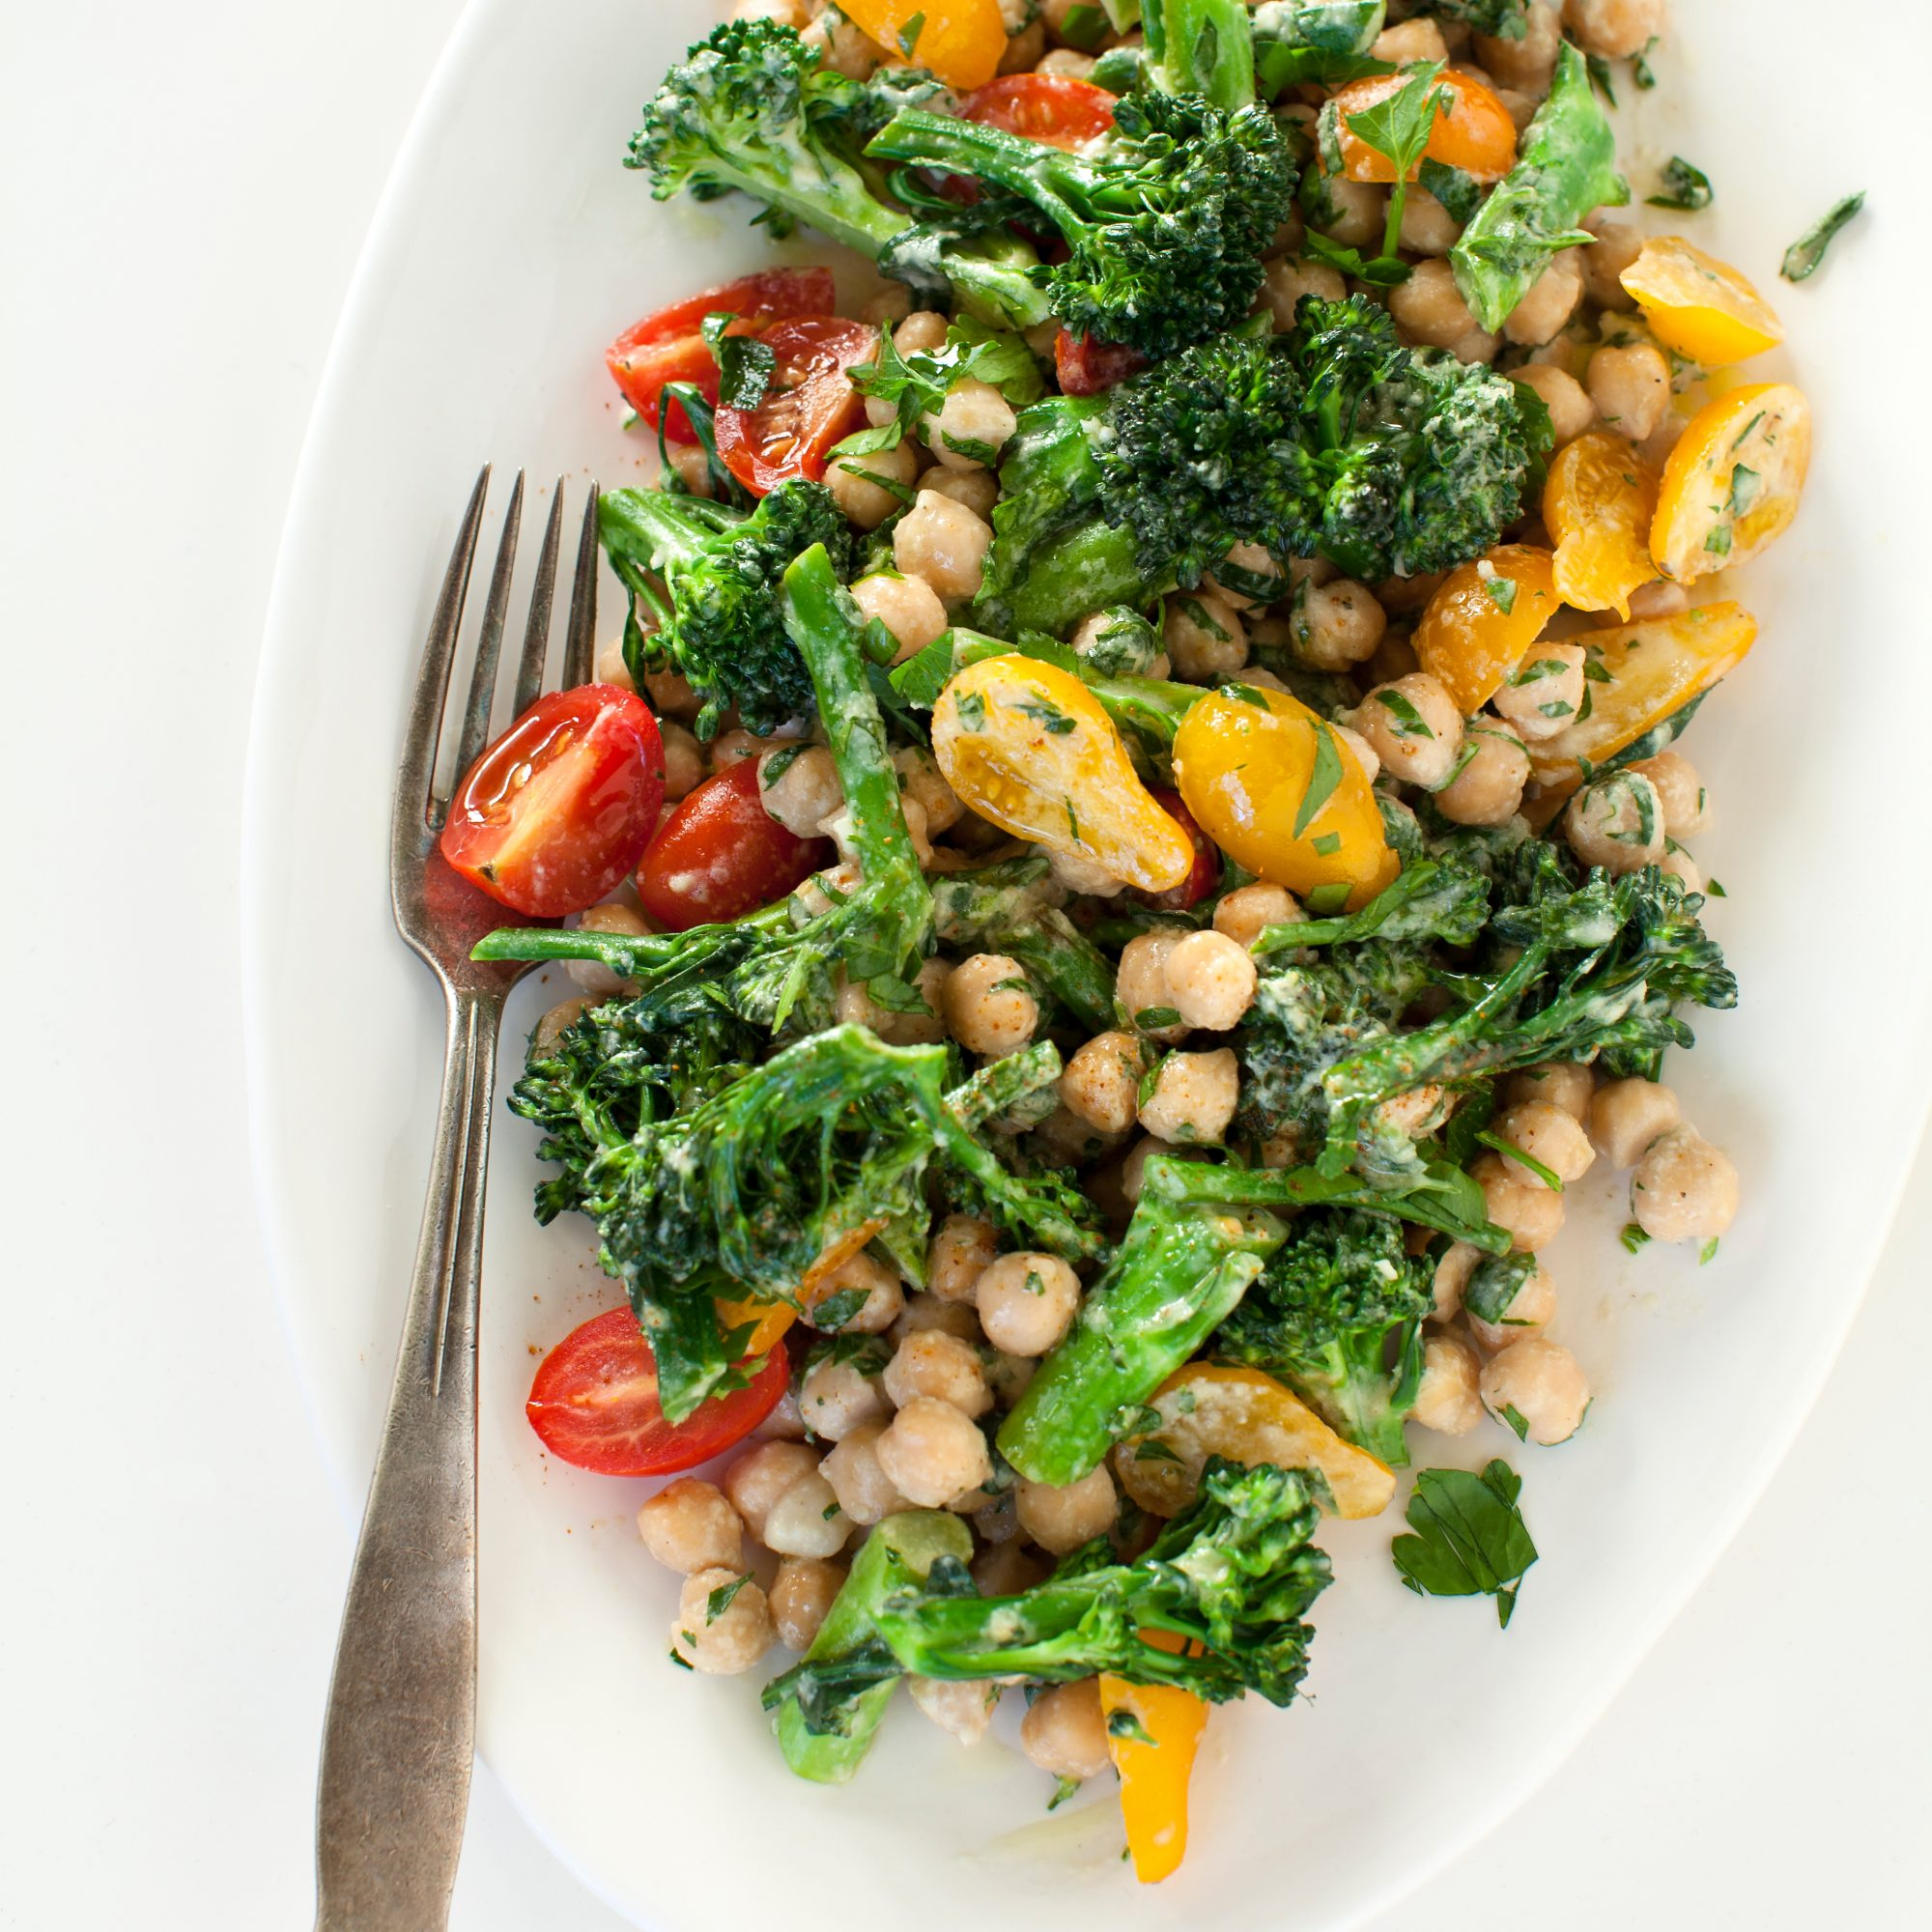 Warm Chickpea and Broccolini Salad with Tahini Dressing